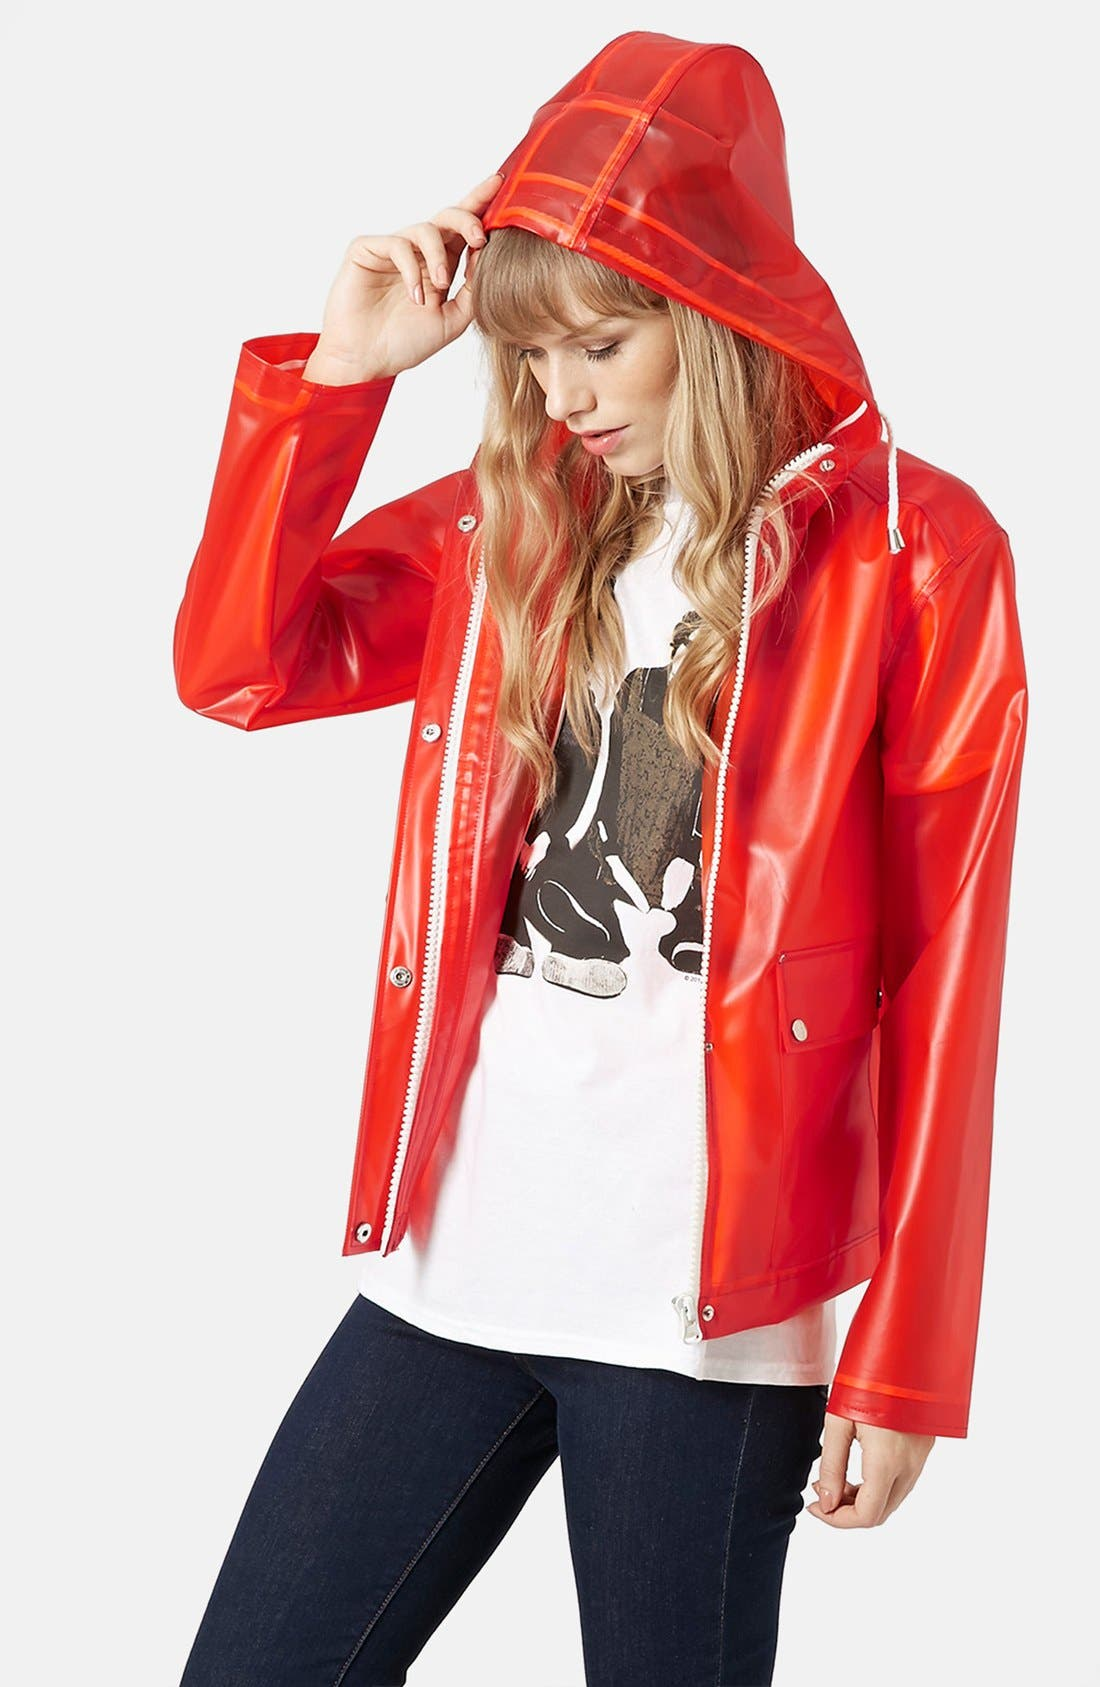 Alternate Image 1 Selected - Topshop 'Bongo' Hooded Plastic Raincoat (Brit Pop-In)